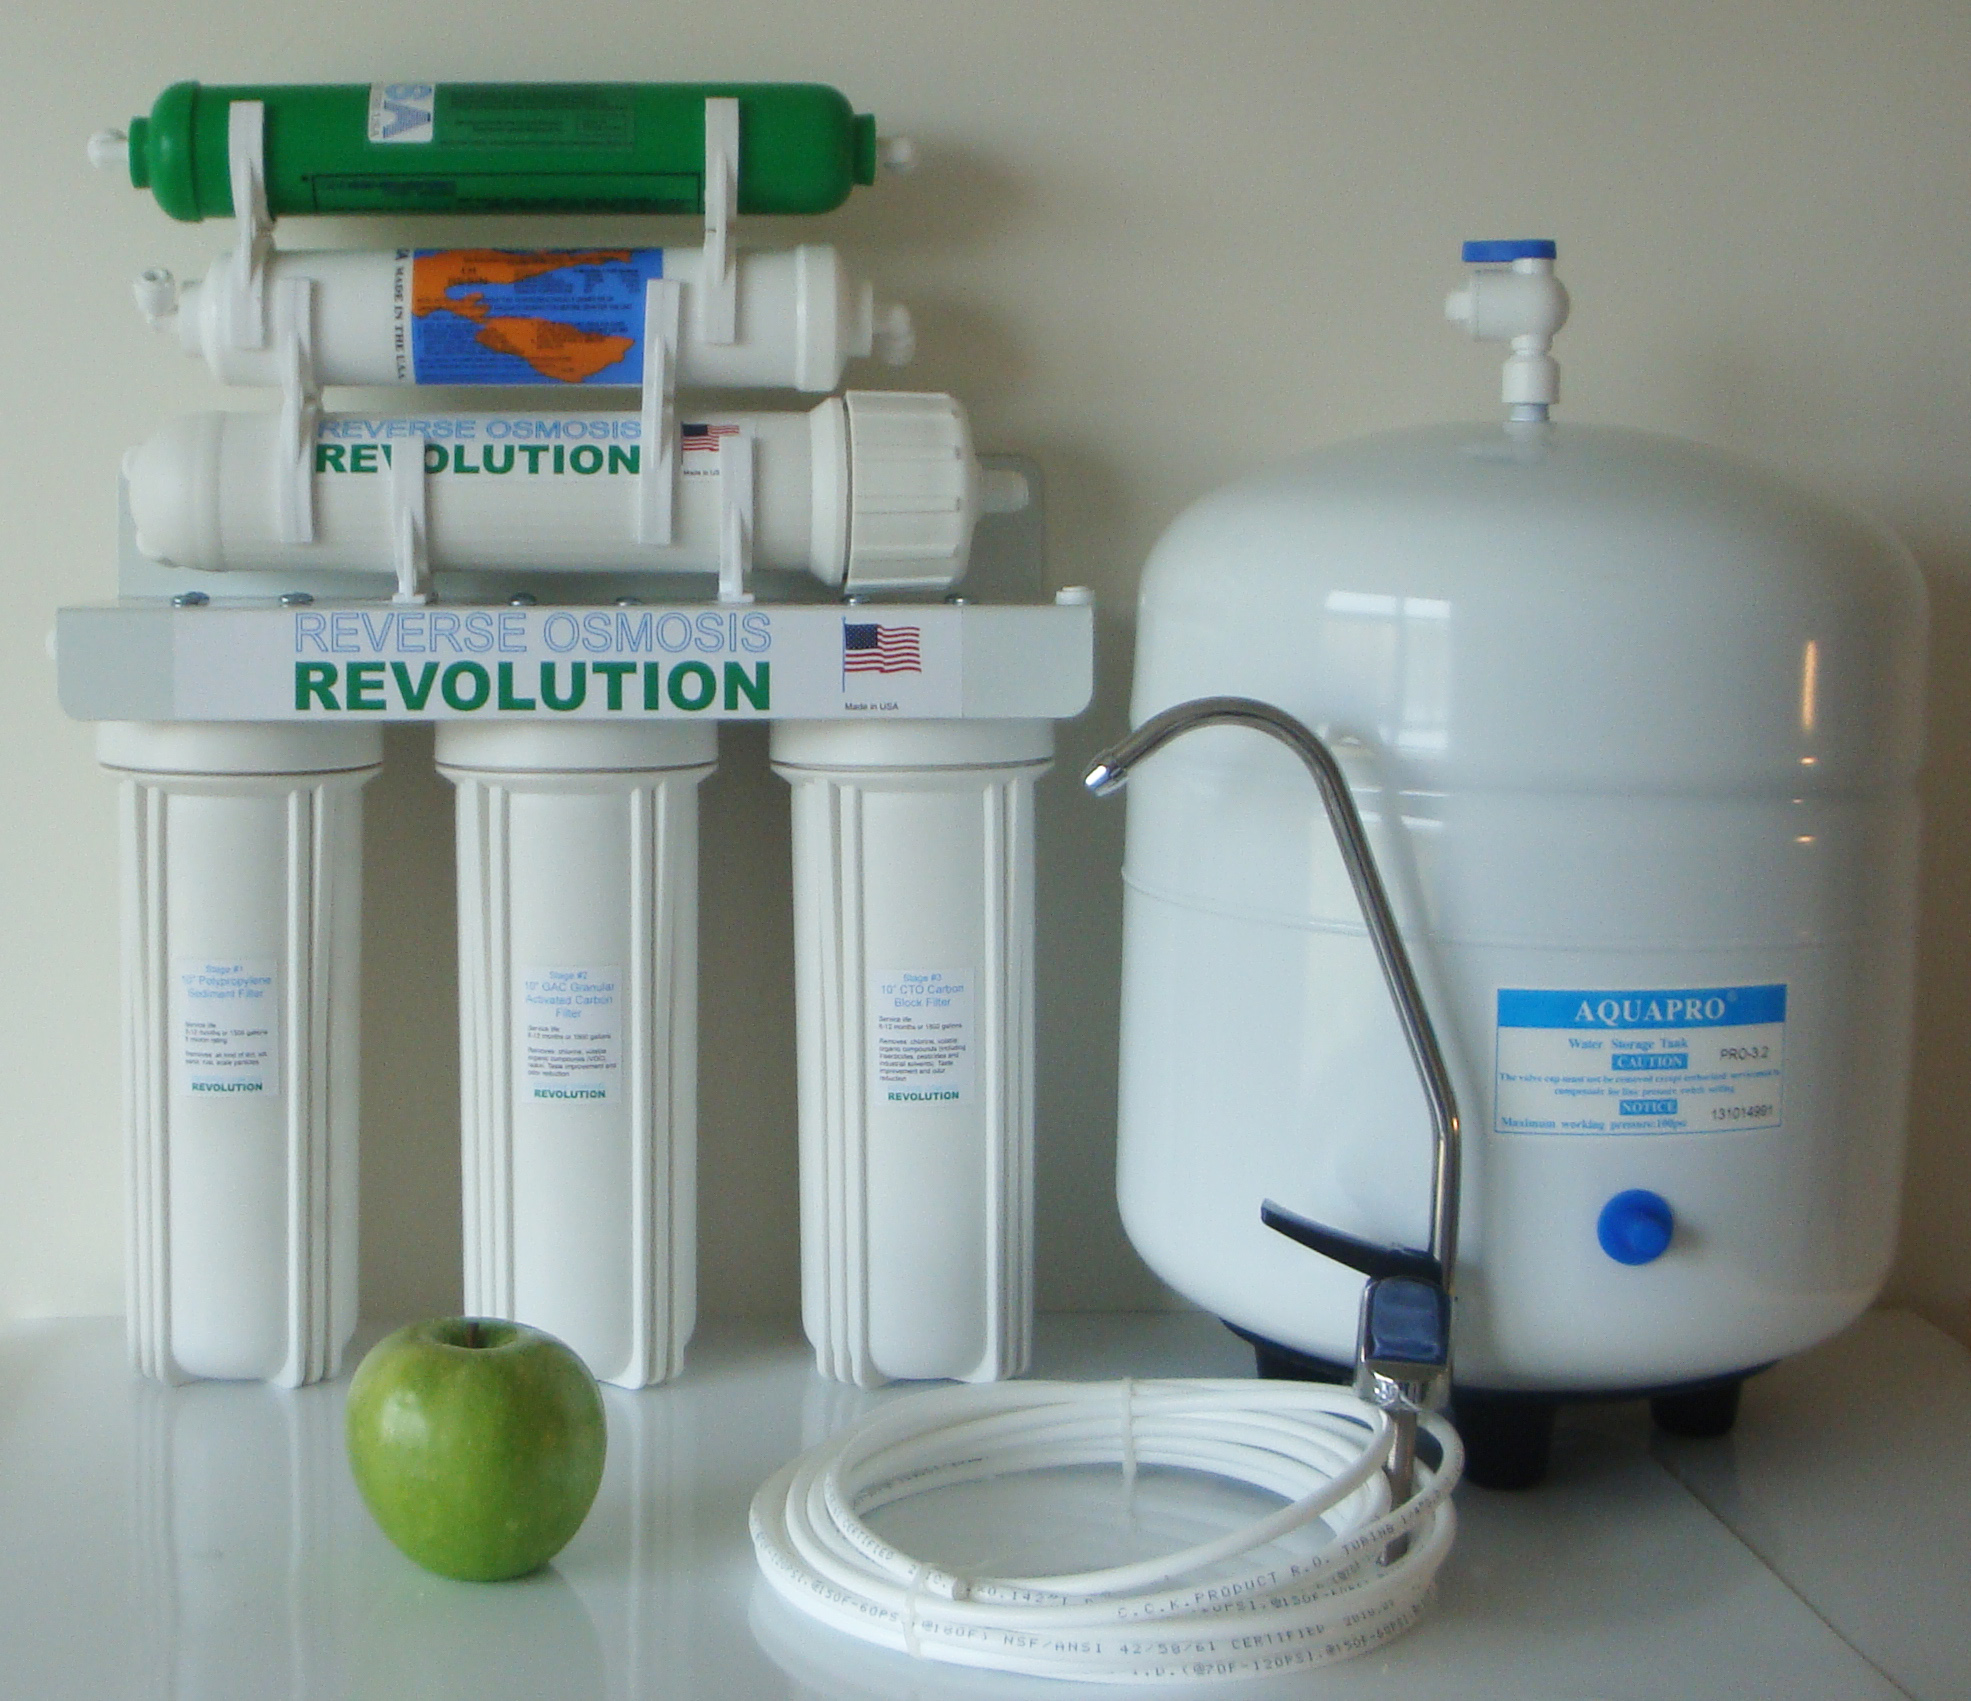 UltraPure 6 Stage Reverse Osmosis Water Purification System with double DI filtration, 50/75/100 GPD membrane